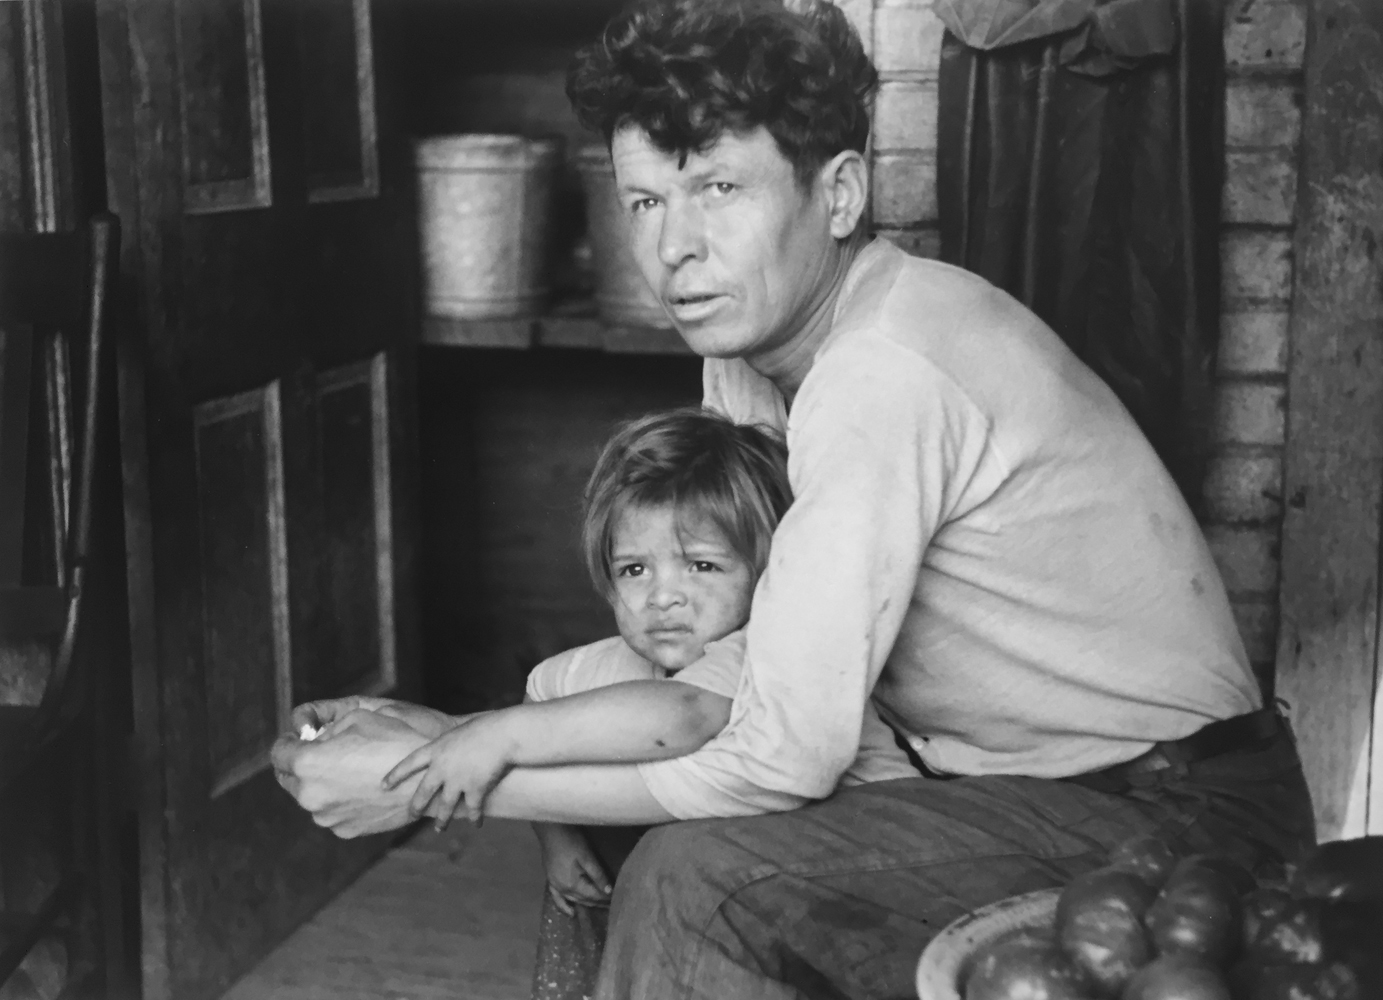 Marion Post Wolcott, Mexican miner and child, Bertha Holl, Scott's Run, West Virginia, 1938, gelatin silver print, 11 x 14 inches, price on request